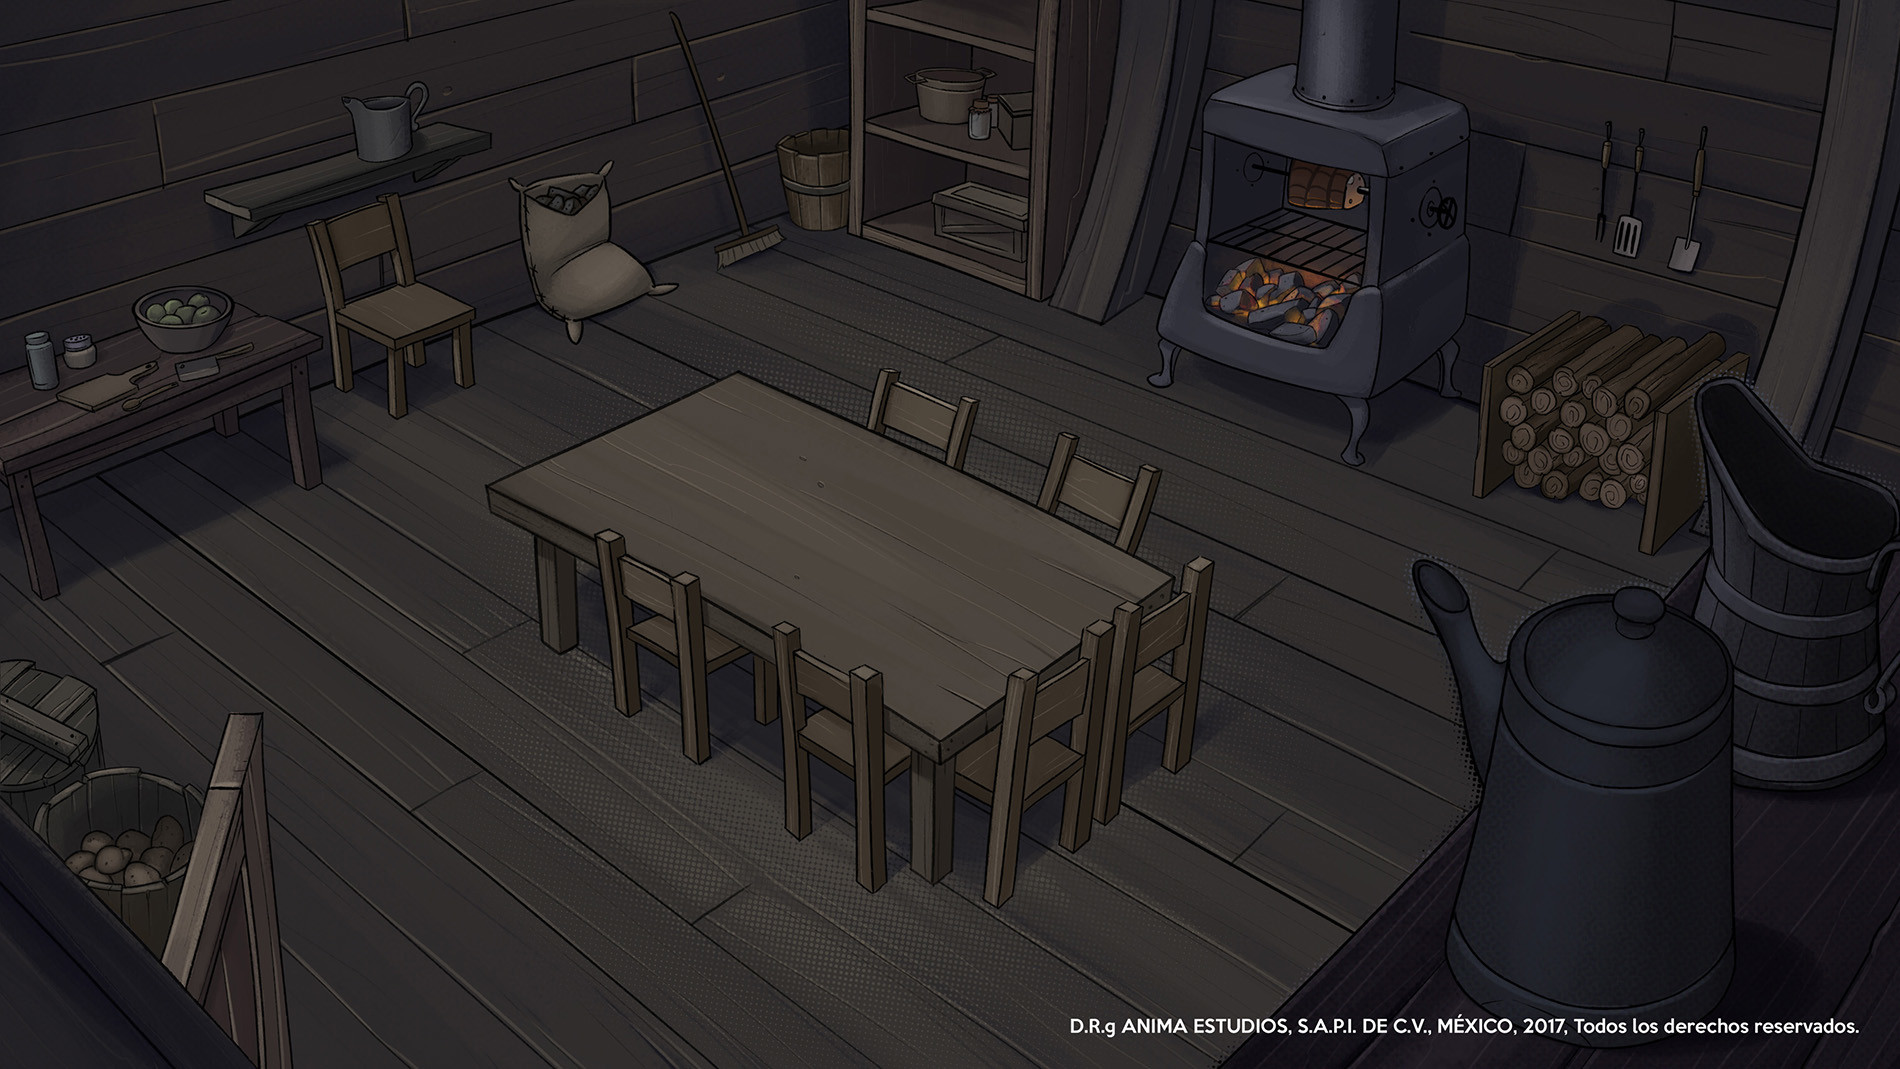 The kitchen inside the airship.